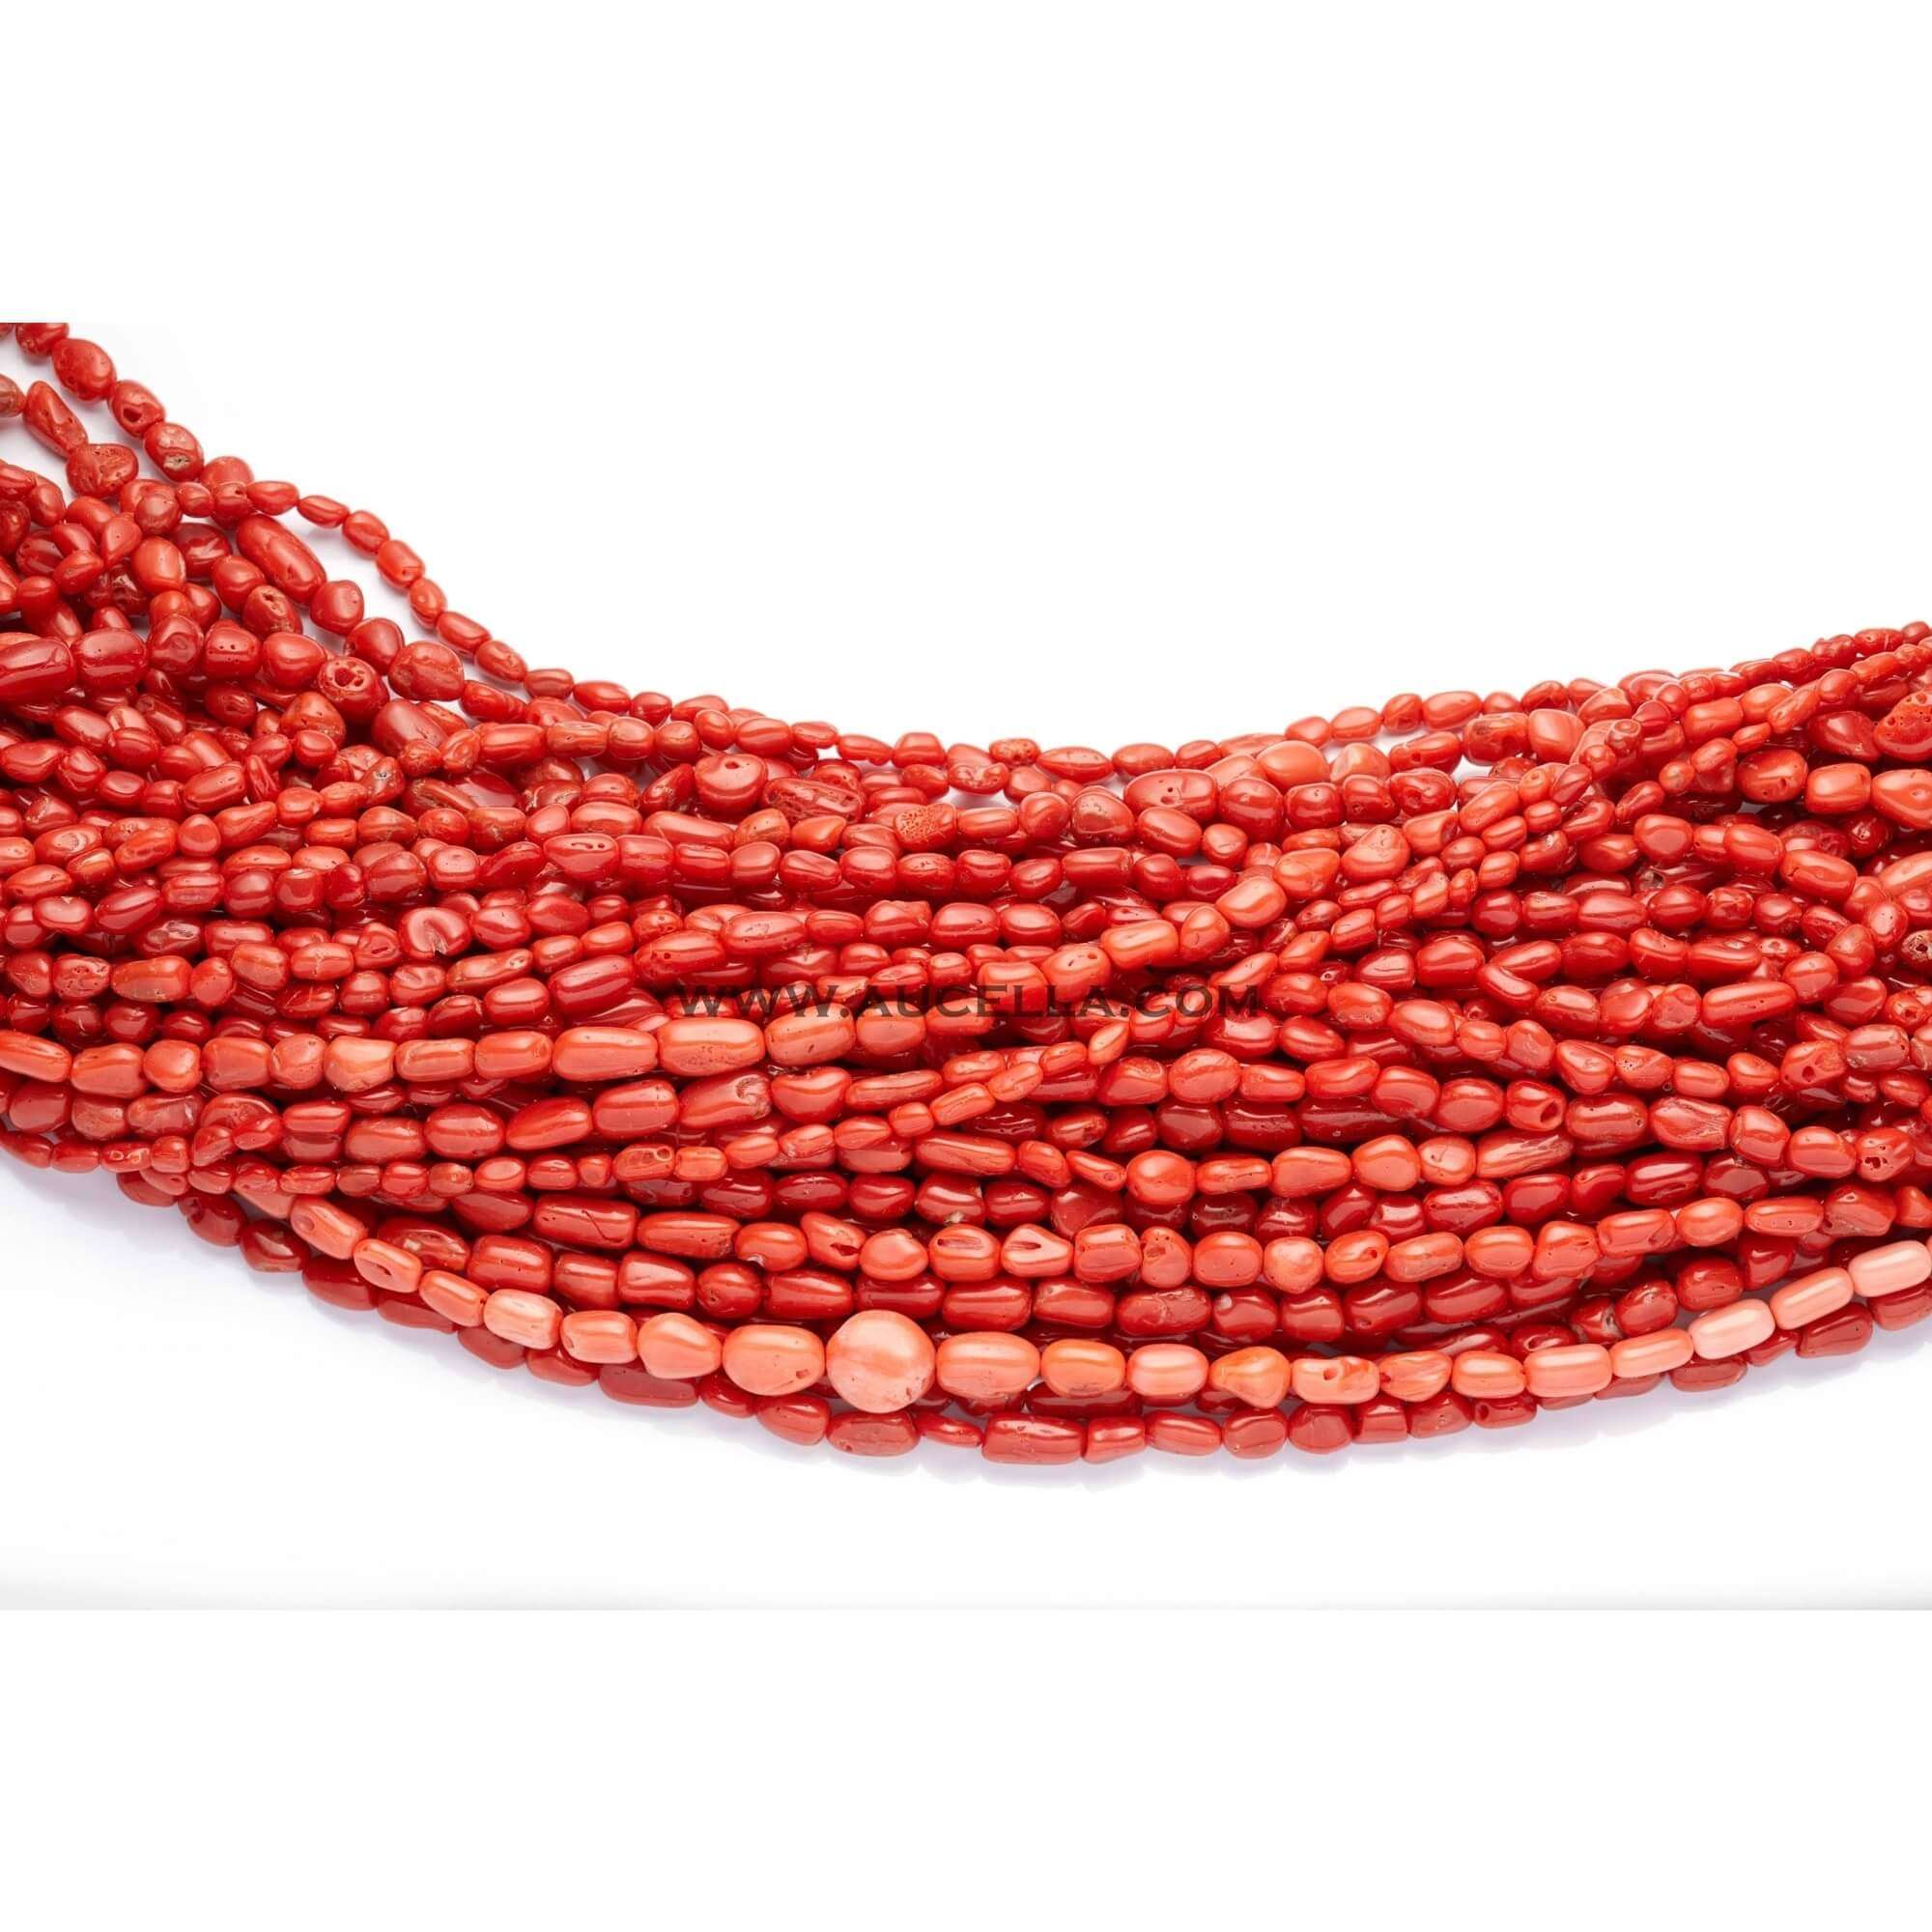 Natural red coral necklaces small size